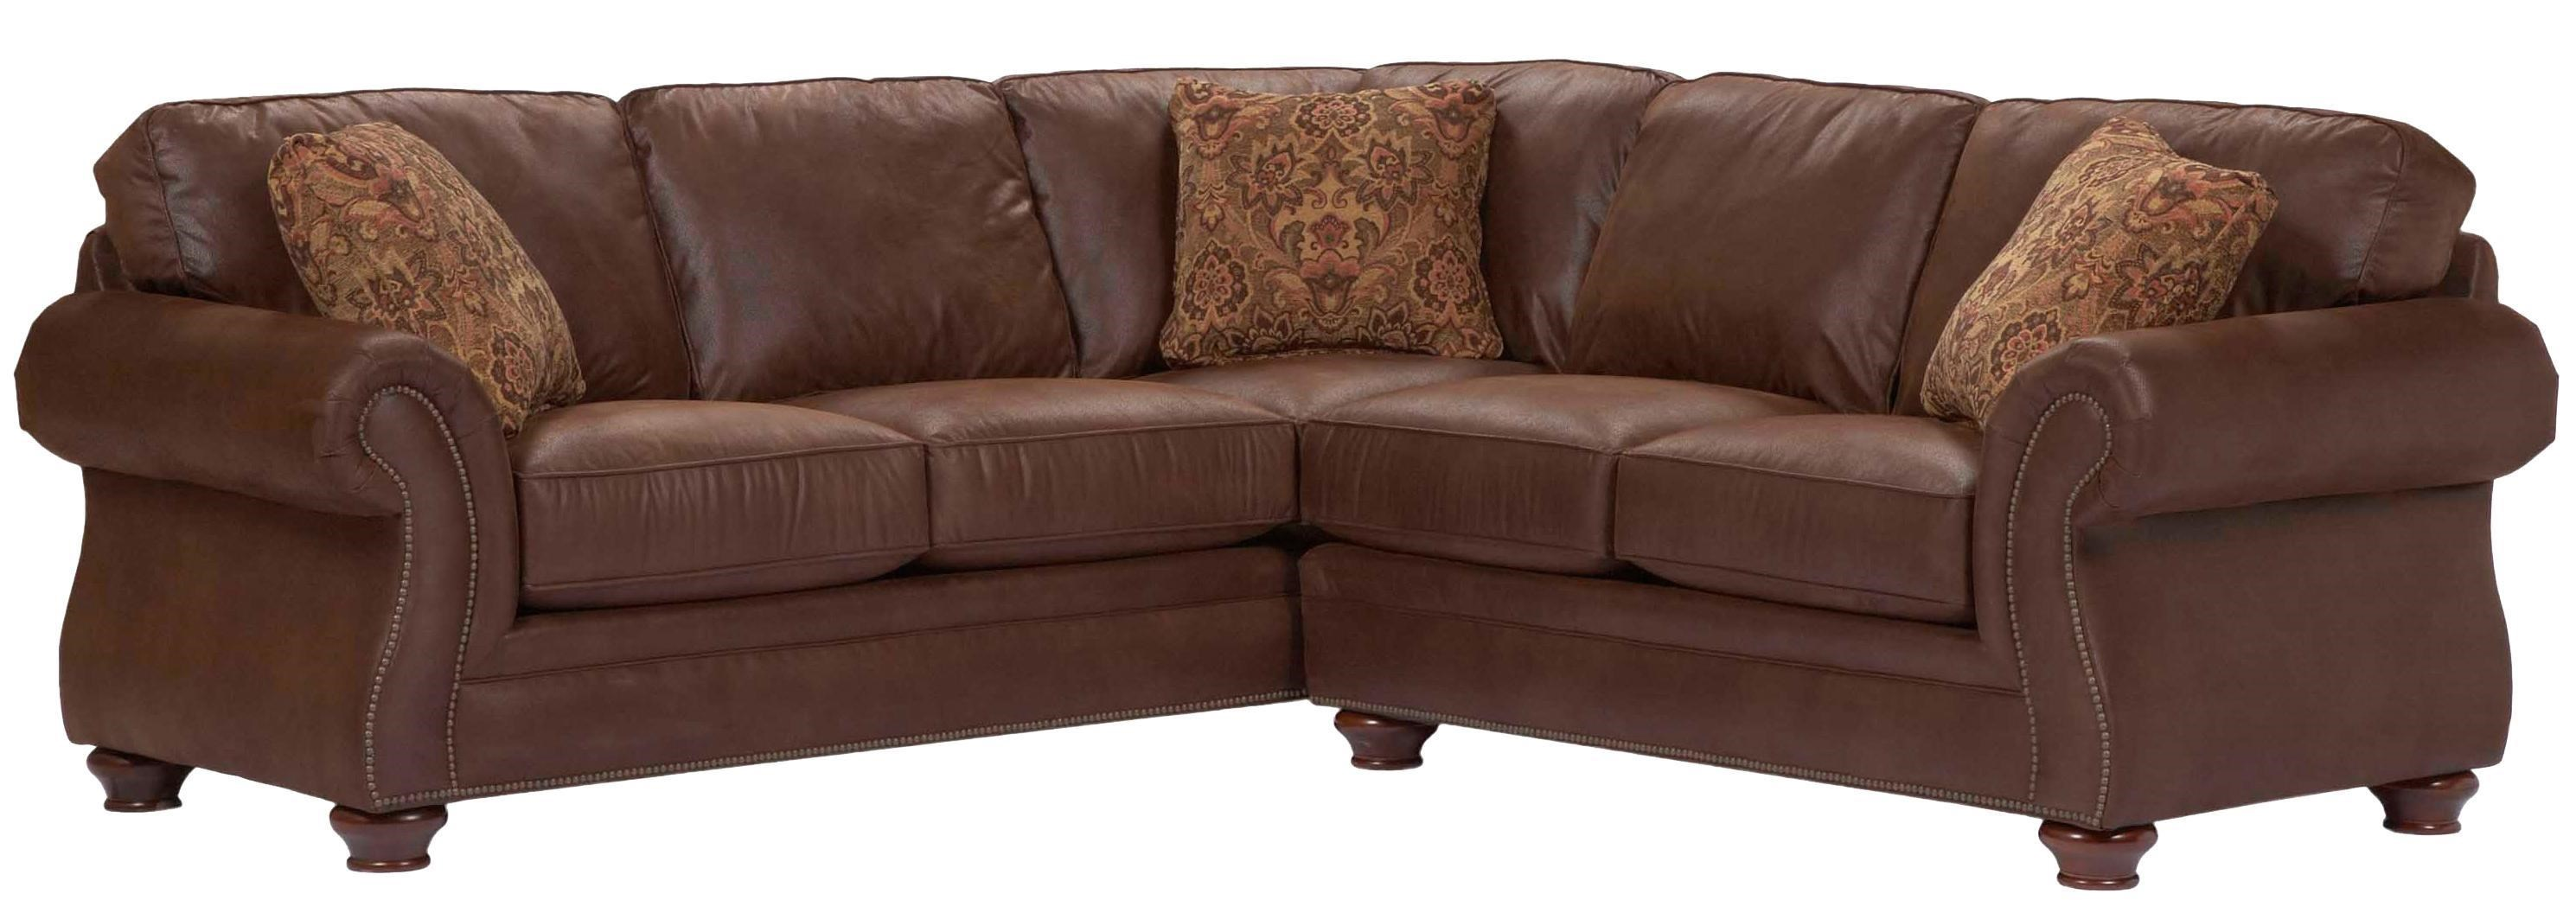 Broyhill Furniture Laramie 2 Piece Corner Sectional Sofa  sc 1 st  Wayside Furniture : corner sectional sofa - Sectionals, Sofas & Couches